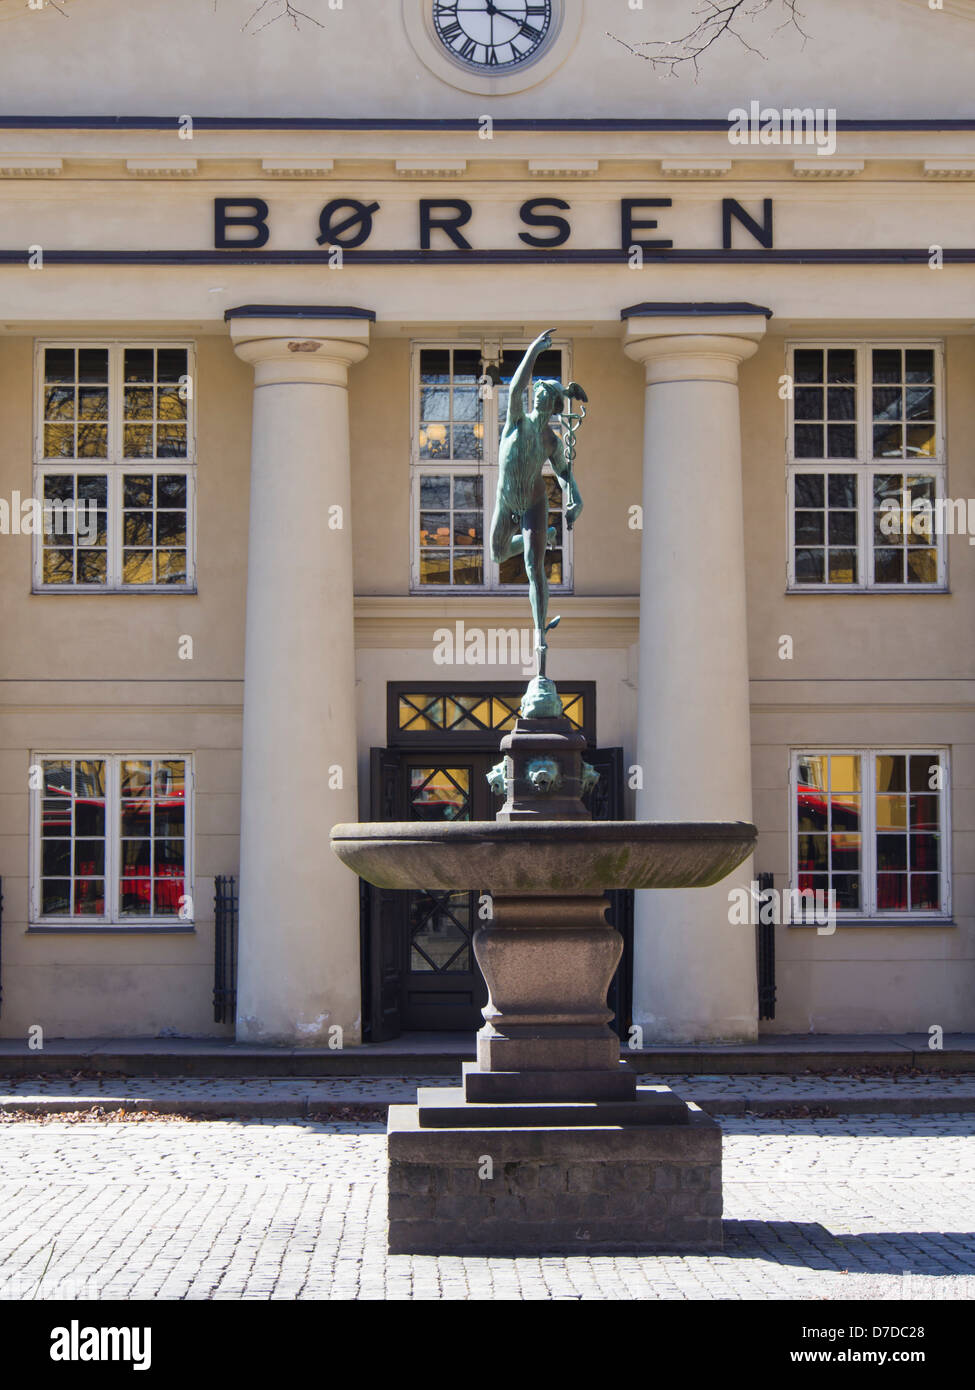 The Oslo Stock exchange , Børsen, centrally located in Norway's capital with a sculpture depicting the - Stock Image